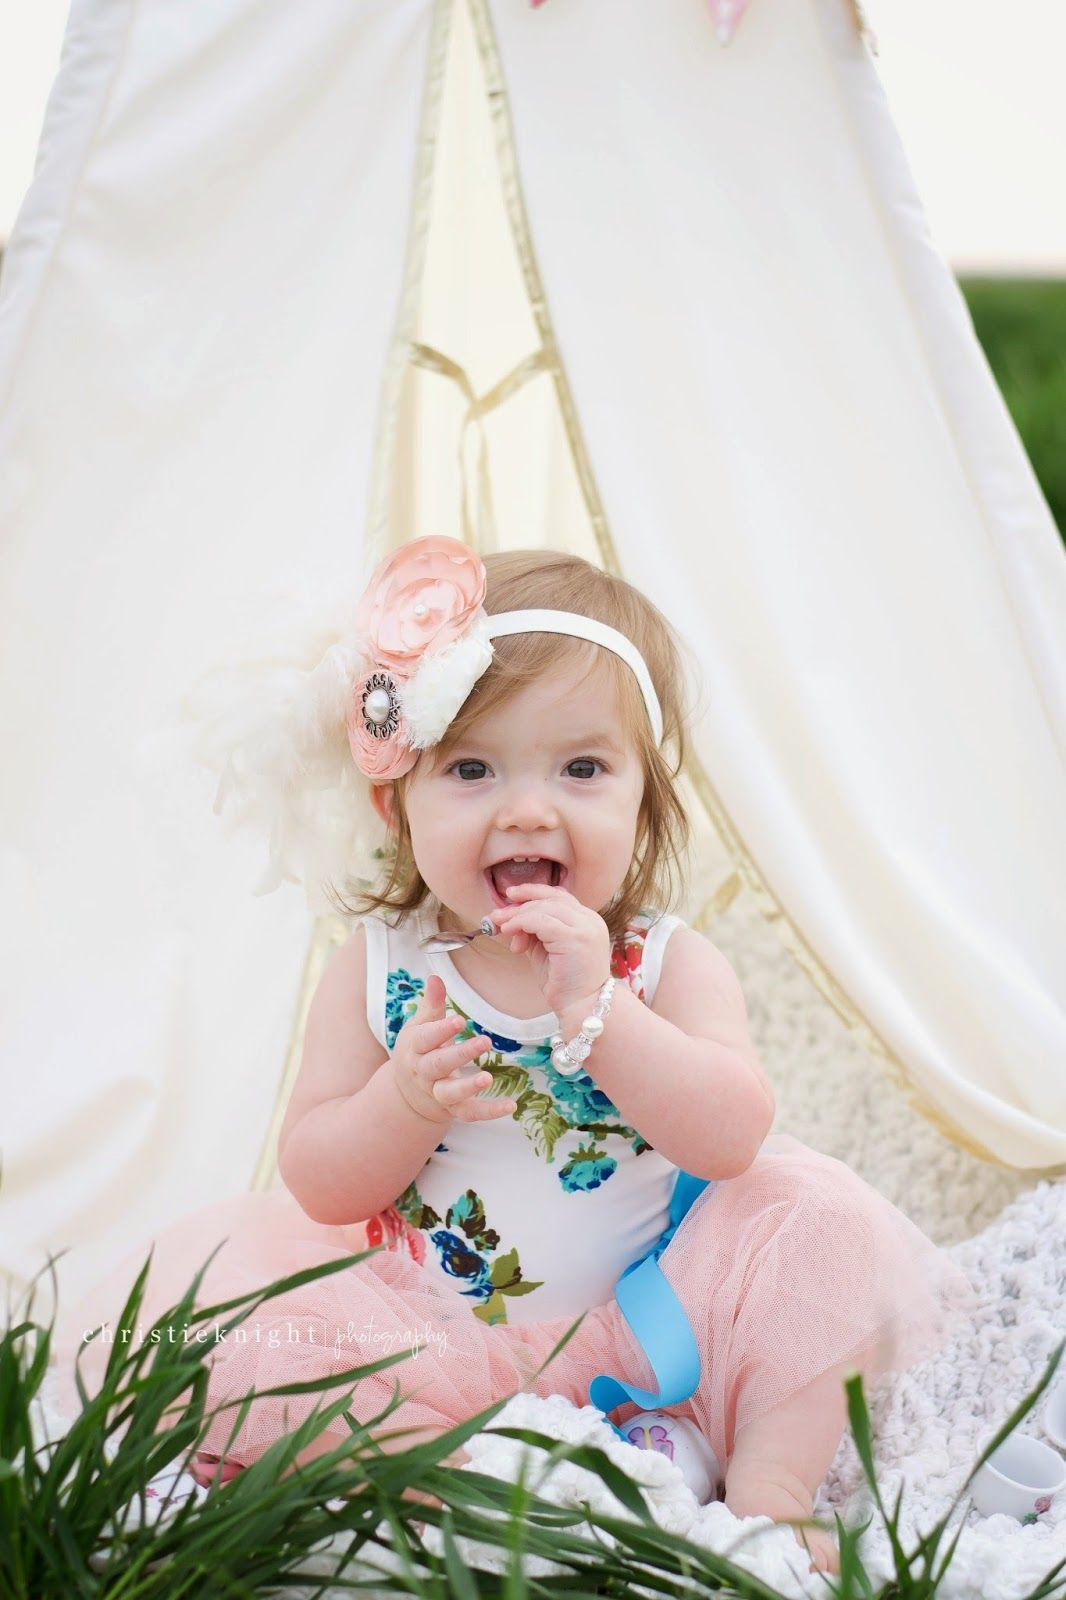 Tee pee pictures // AVERY // 1ST BIRTHDAY SESSION // www